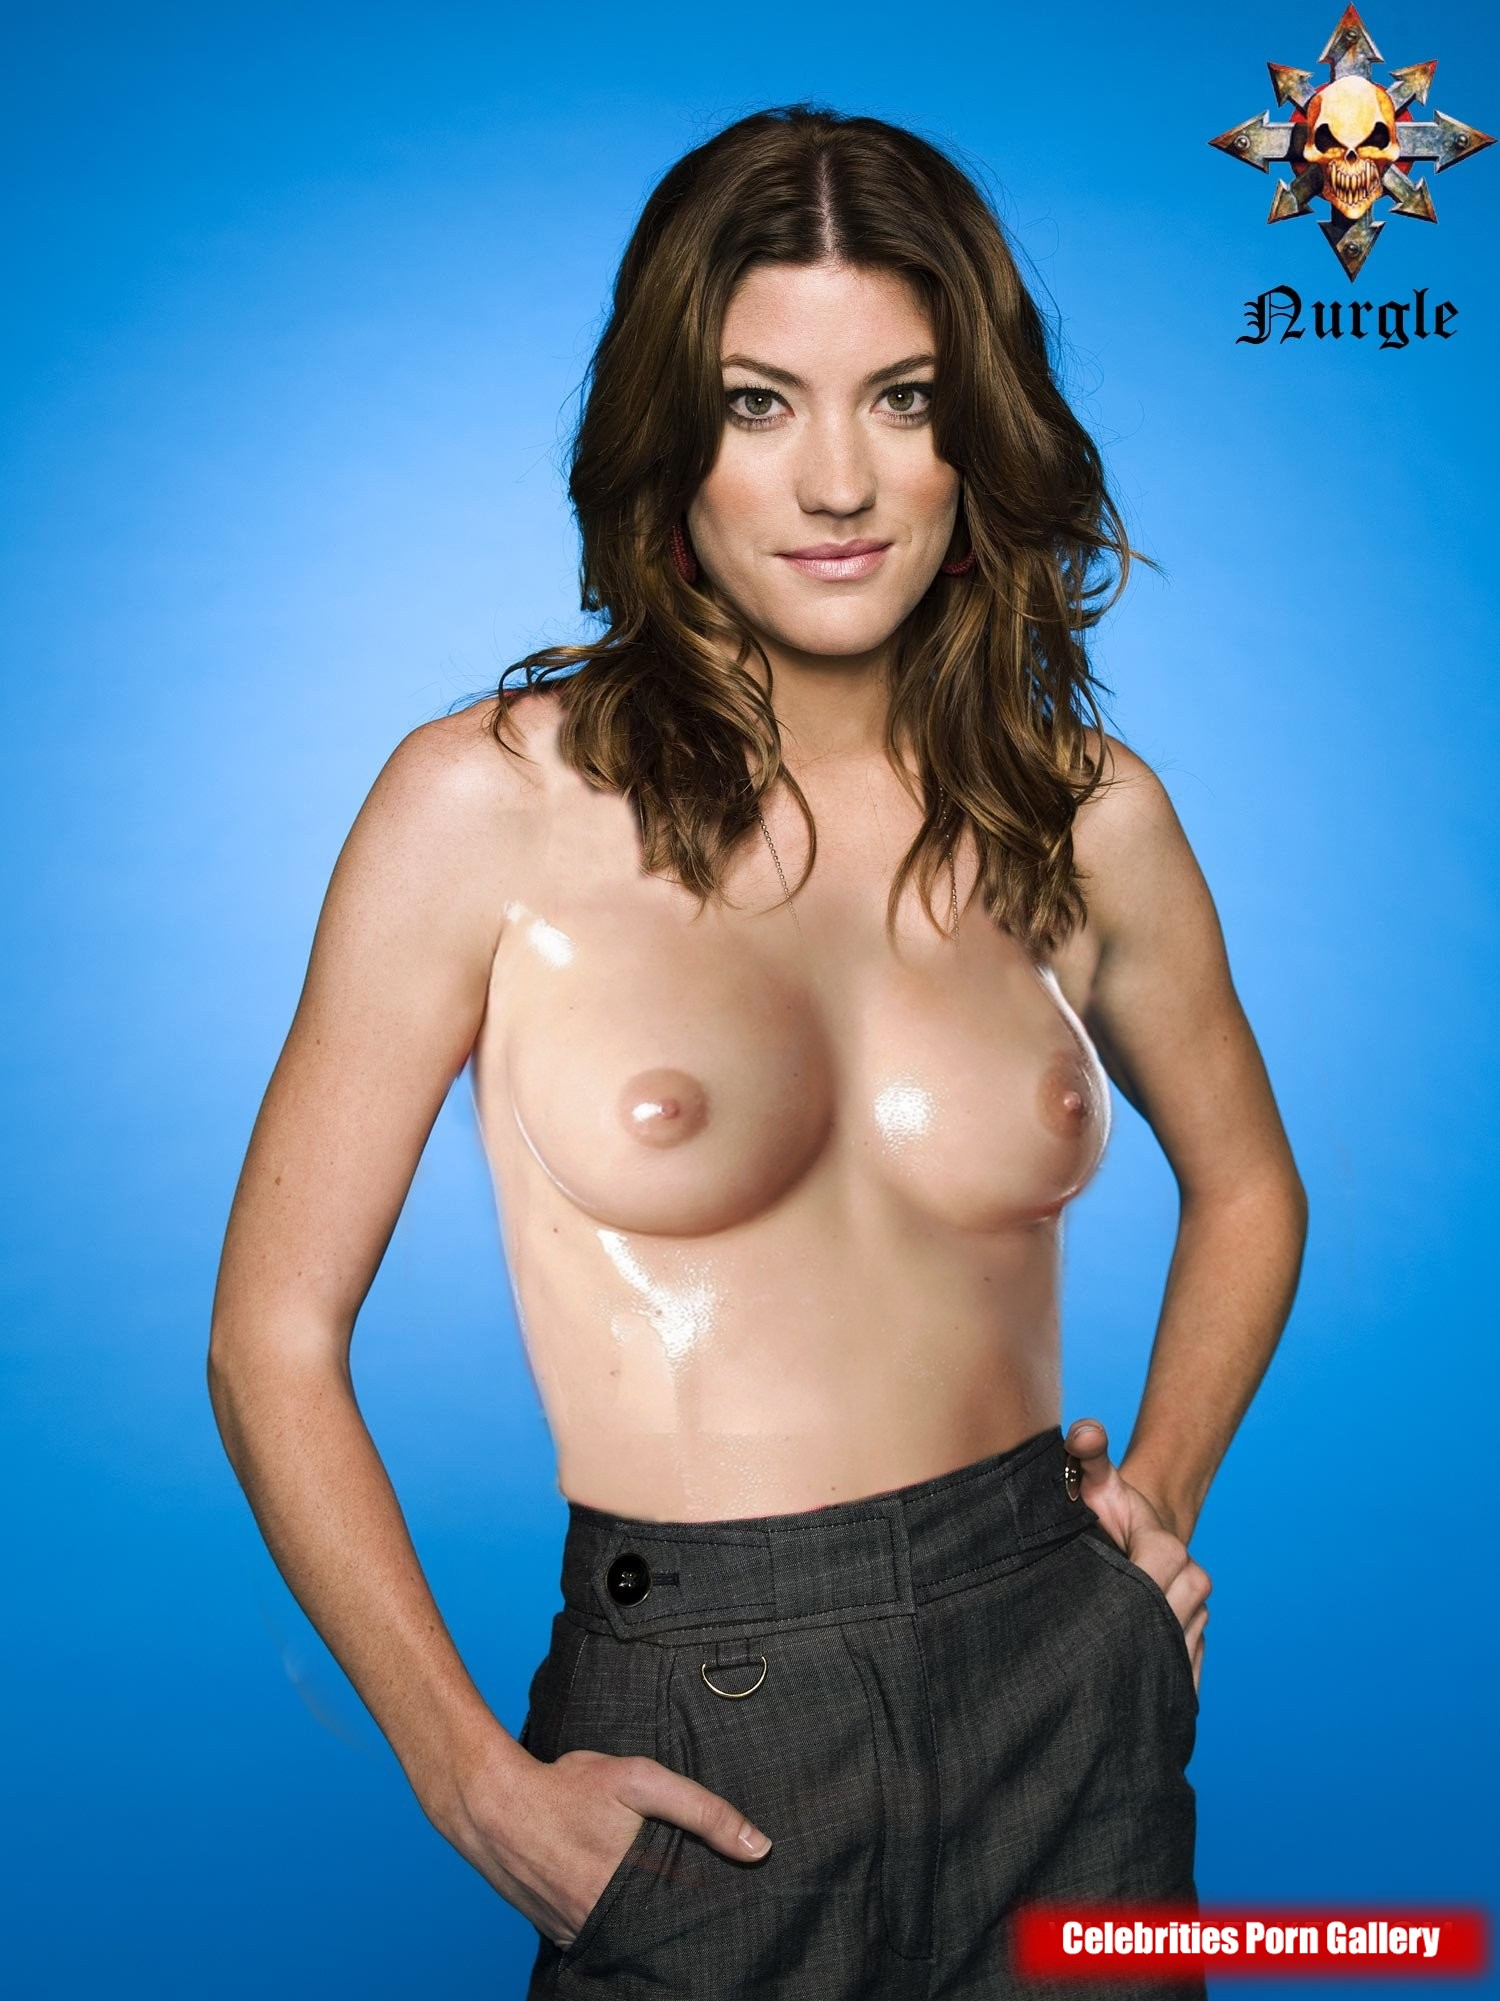 Opinion Jennifer carpenter real nude topic Rather